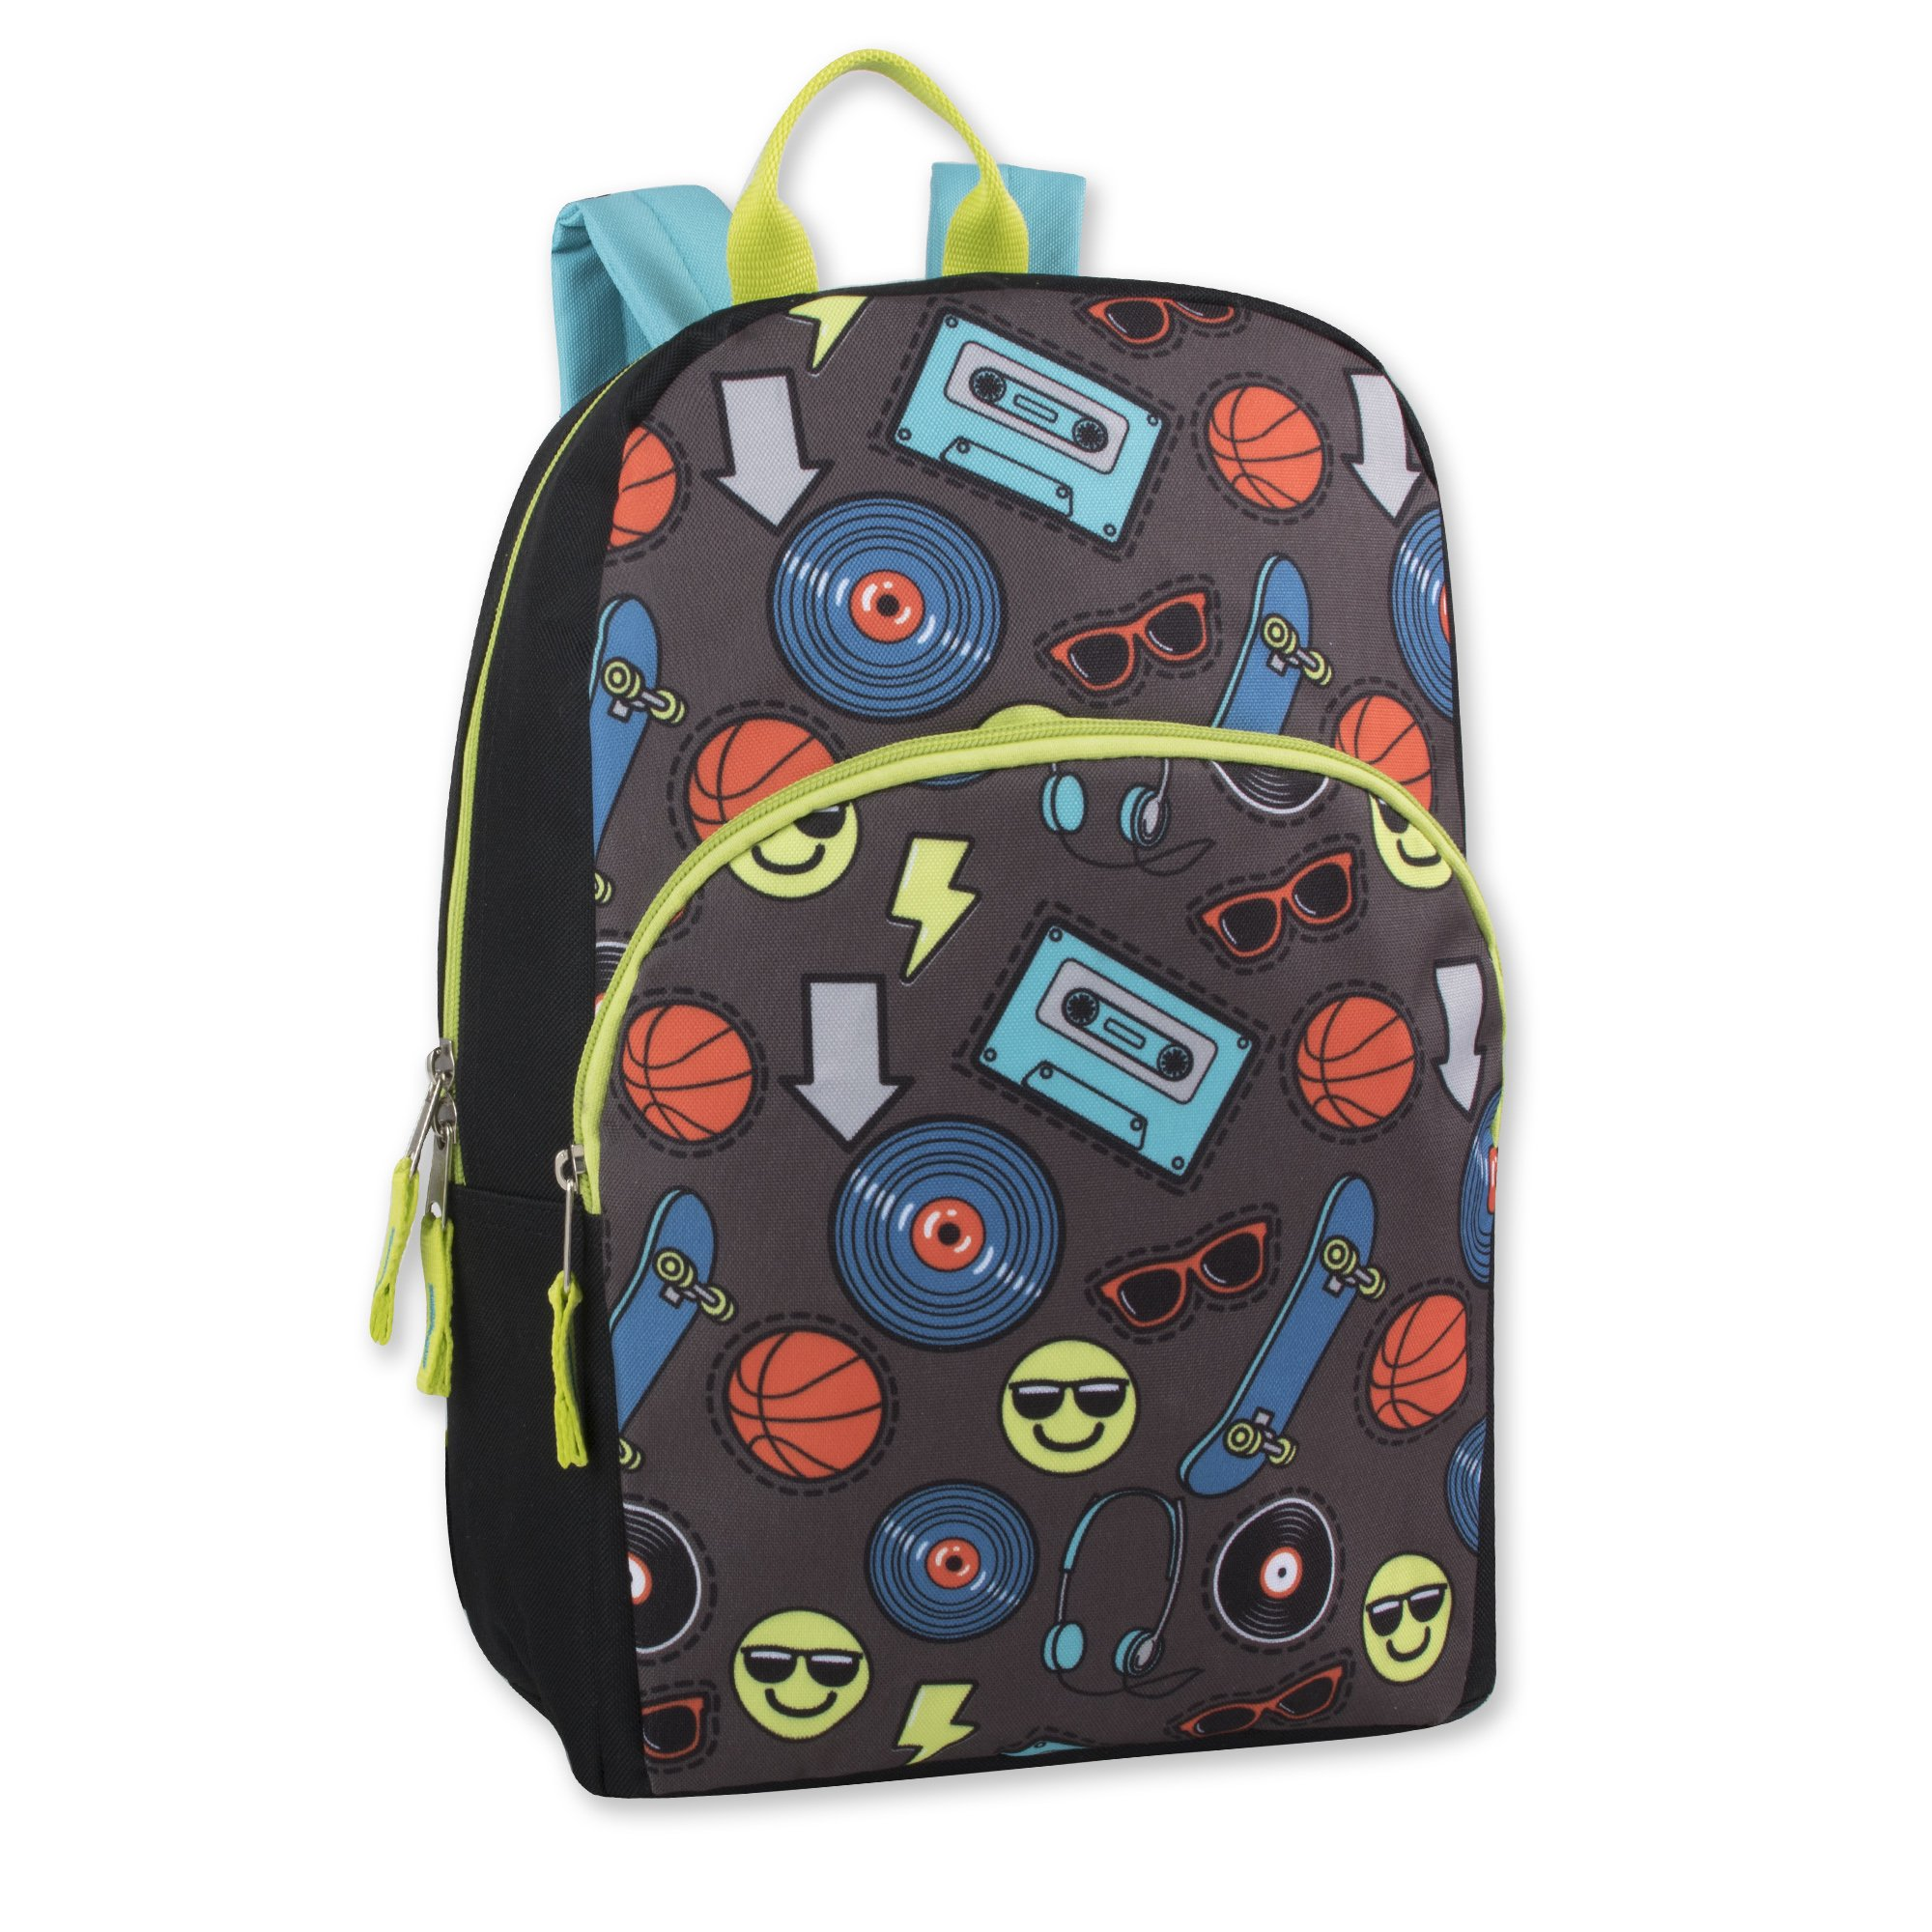 Trail maker Character Backpack (15'') with Fun Fashionable Design for Boys & Girls (Emoji Boy) by Trail maker (Image #1)